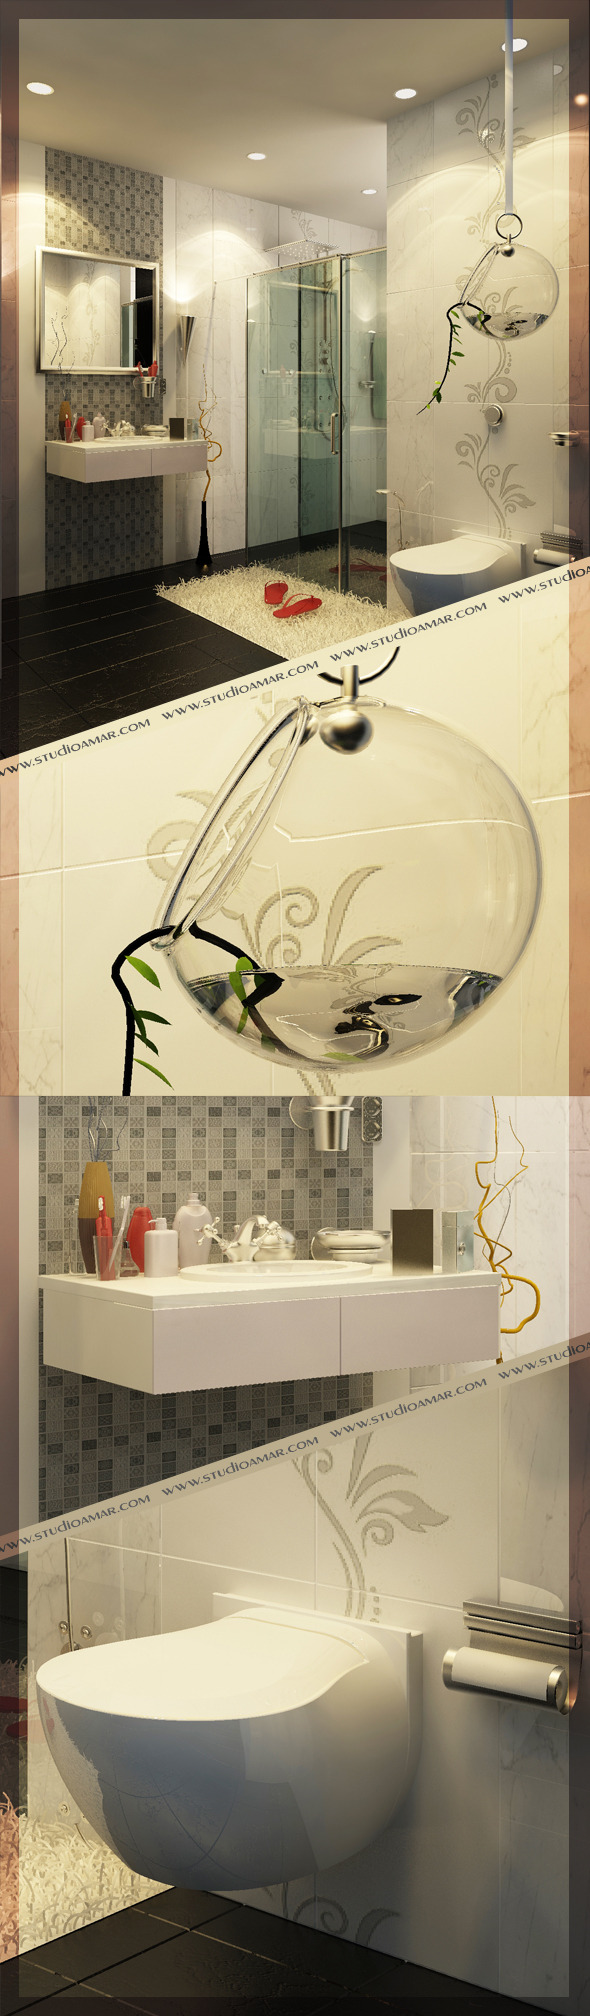 Realistic Bathroom 117 - 3DOcean Item for Sale